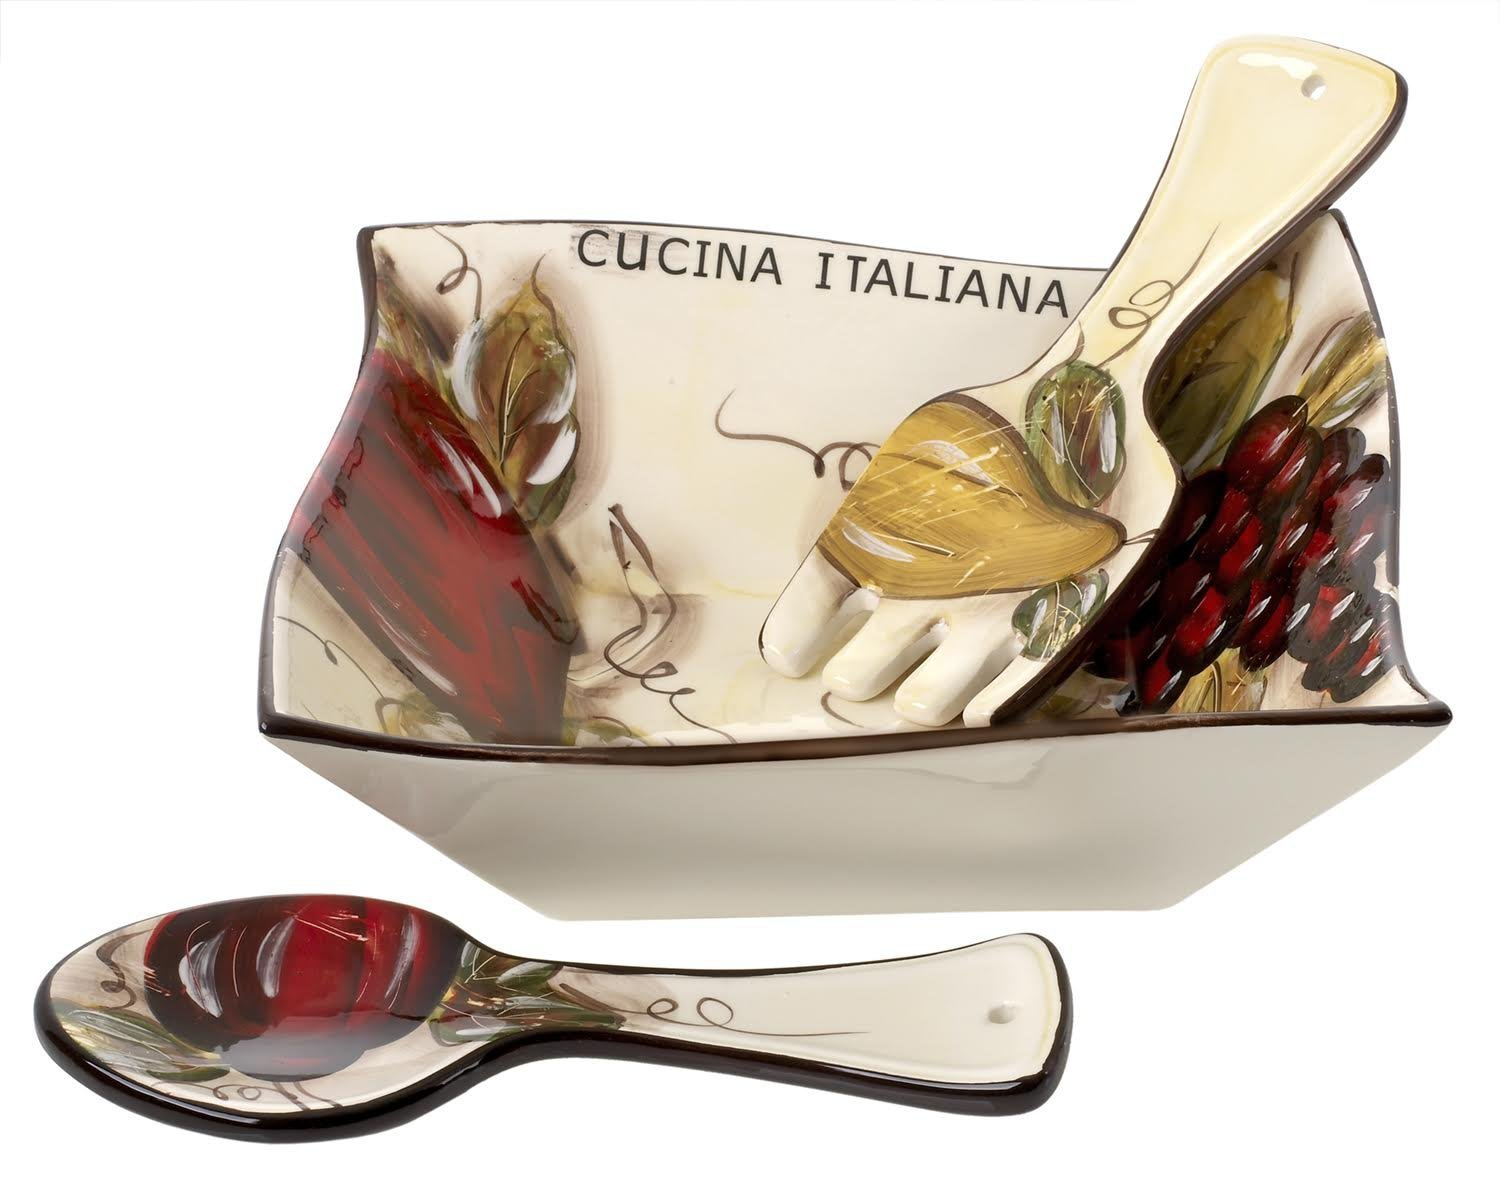 Cucina Italiana Ceramic Square Salad Serving Bowl with Servers 10 x 10 Inches Soft White 0794-562